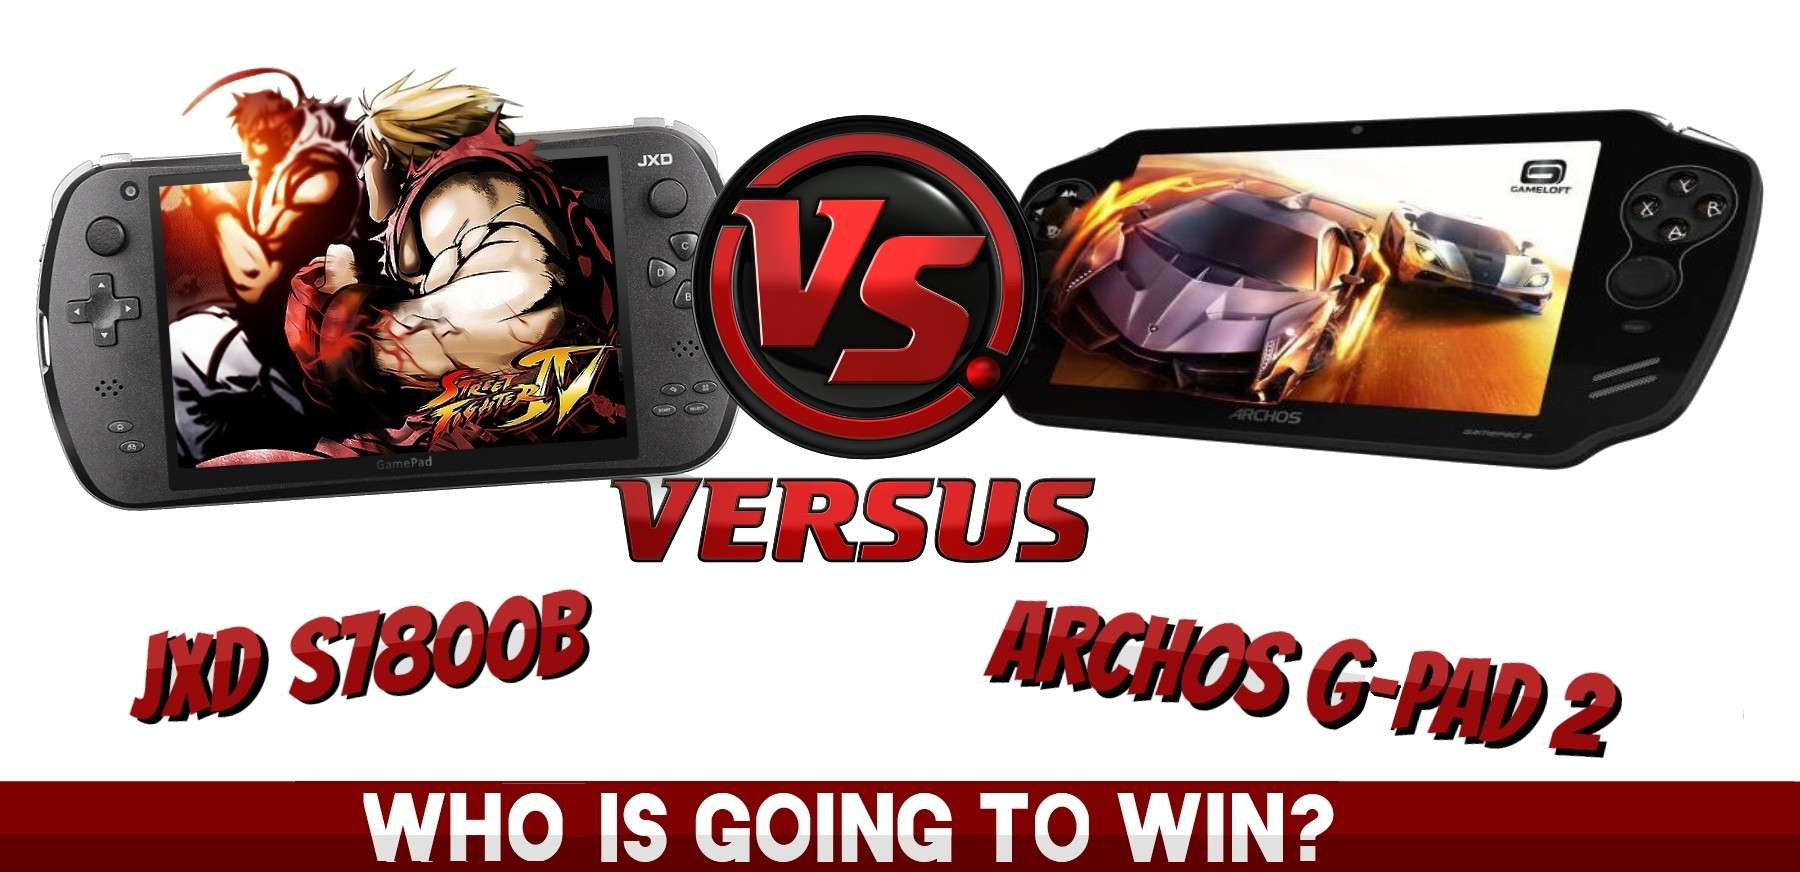 Archos GamePad2 - Page 4 Jxd_vs11